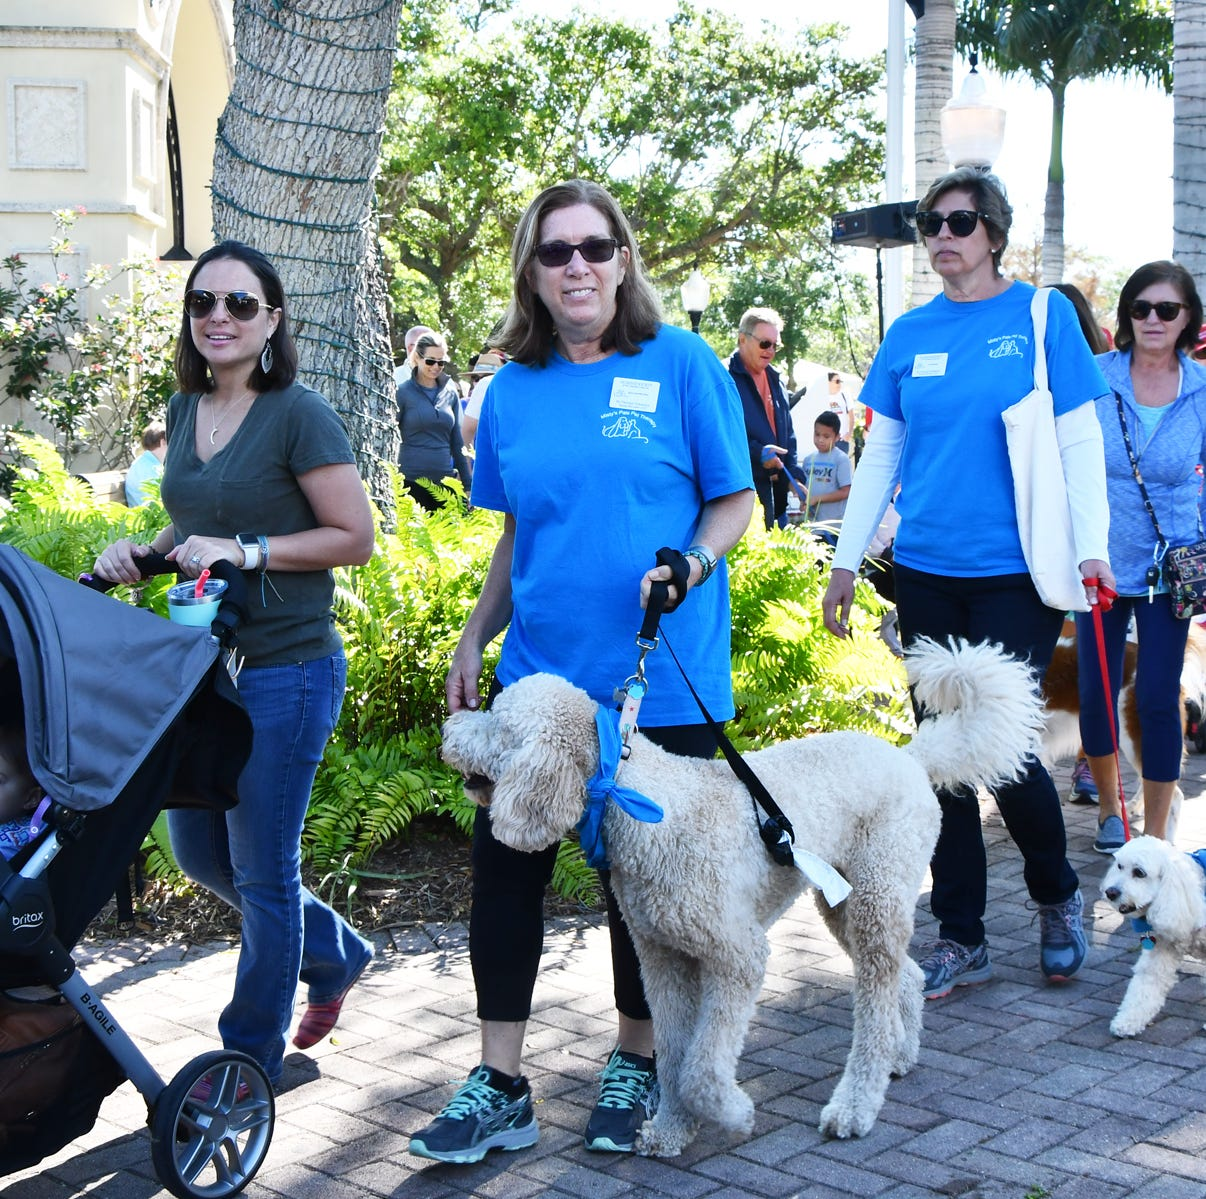 Thousands enjoy Mutt March, raising $30,000 for Humane Society of Treasure Coast